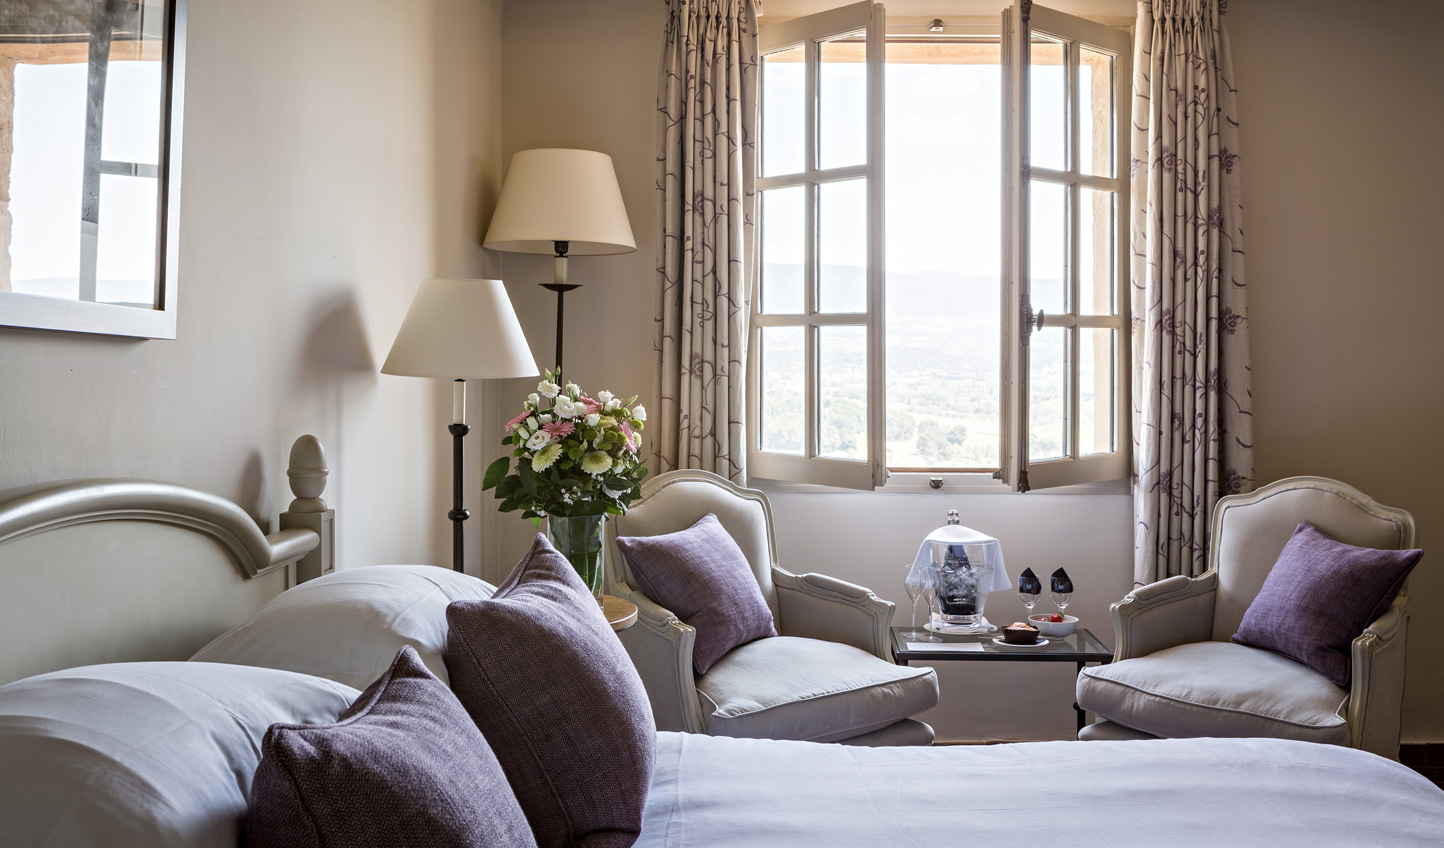 Bursting with Provencal charm, cosy up in your charming suite at Crillon le Brave